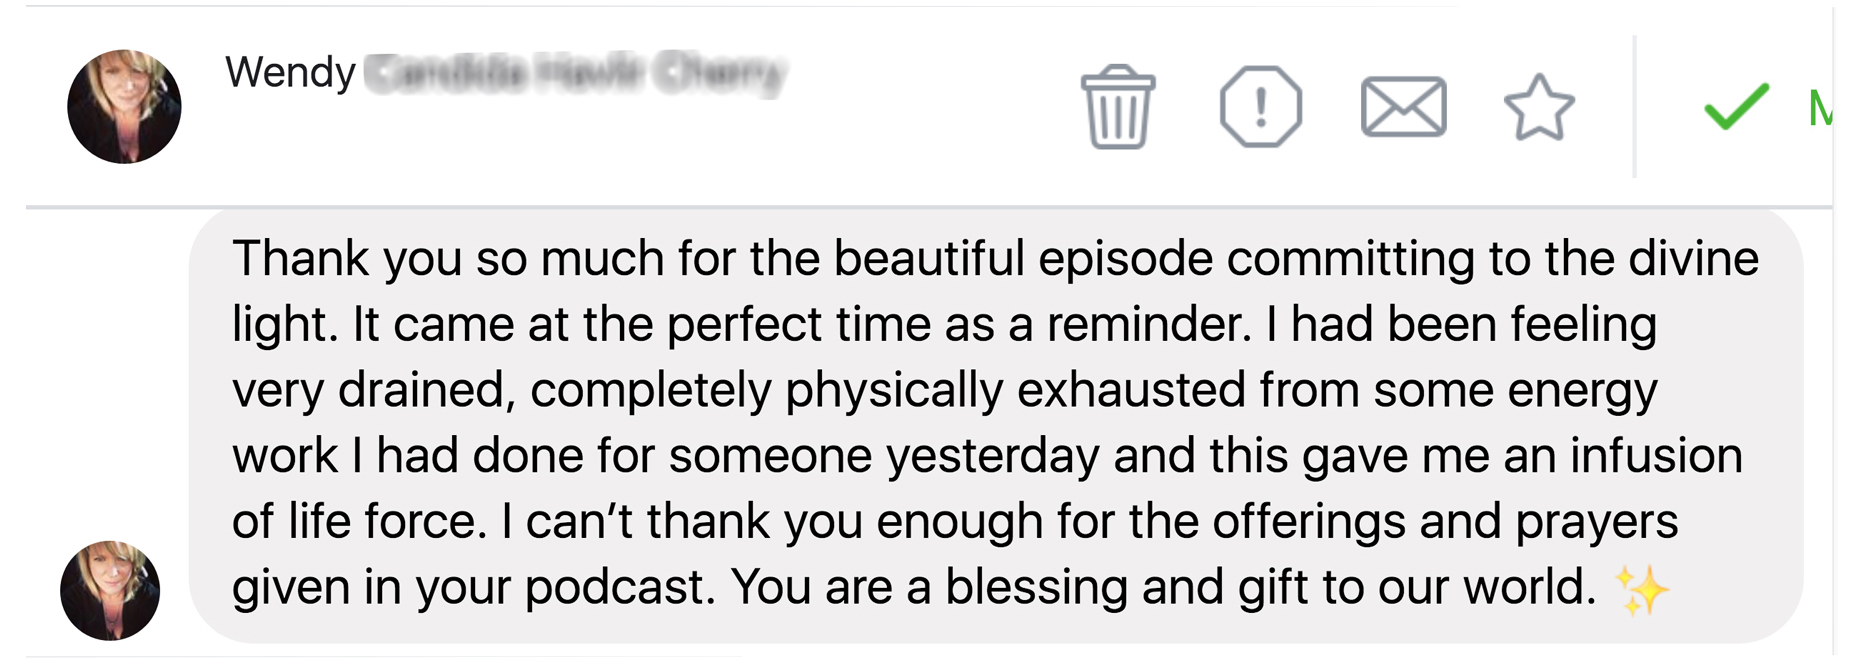 About DivineEssence Podcast Testimonial Wendy.jpg